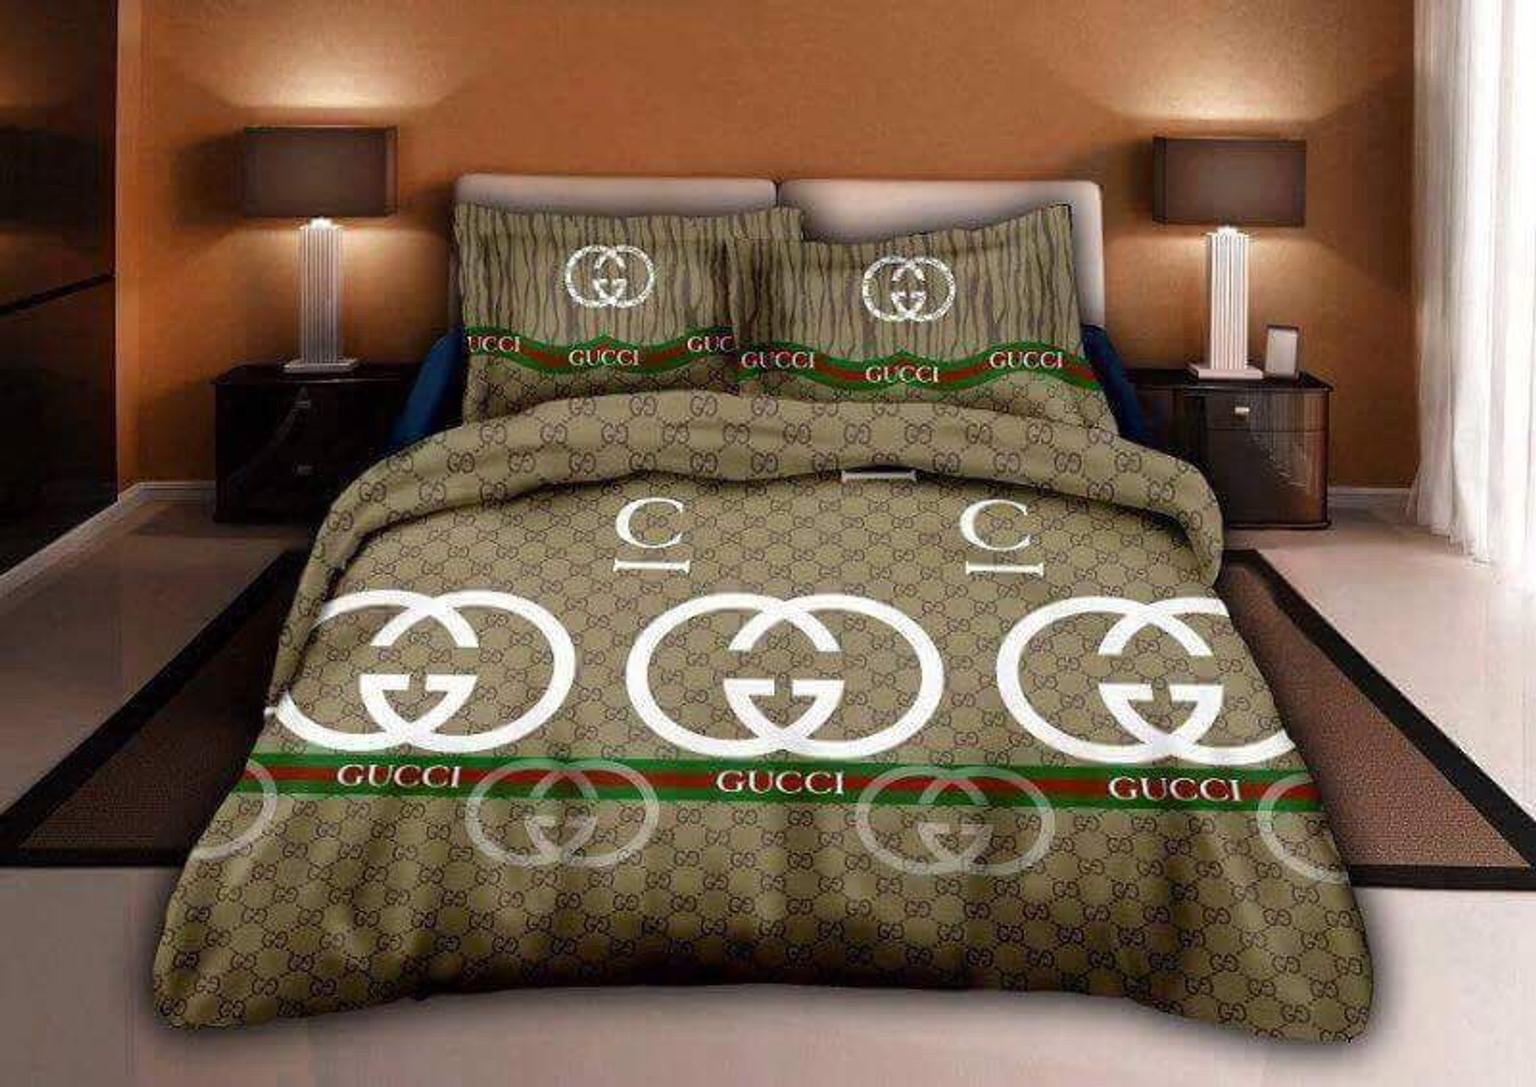 Designer Bedding Gucci Chanel Louis Vuitton In Langley For 45 00 For Sale Shpock